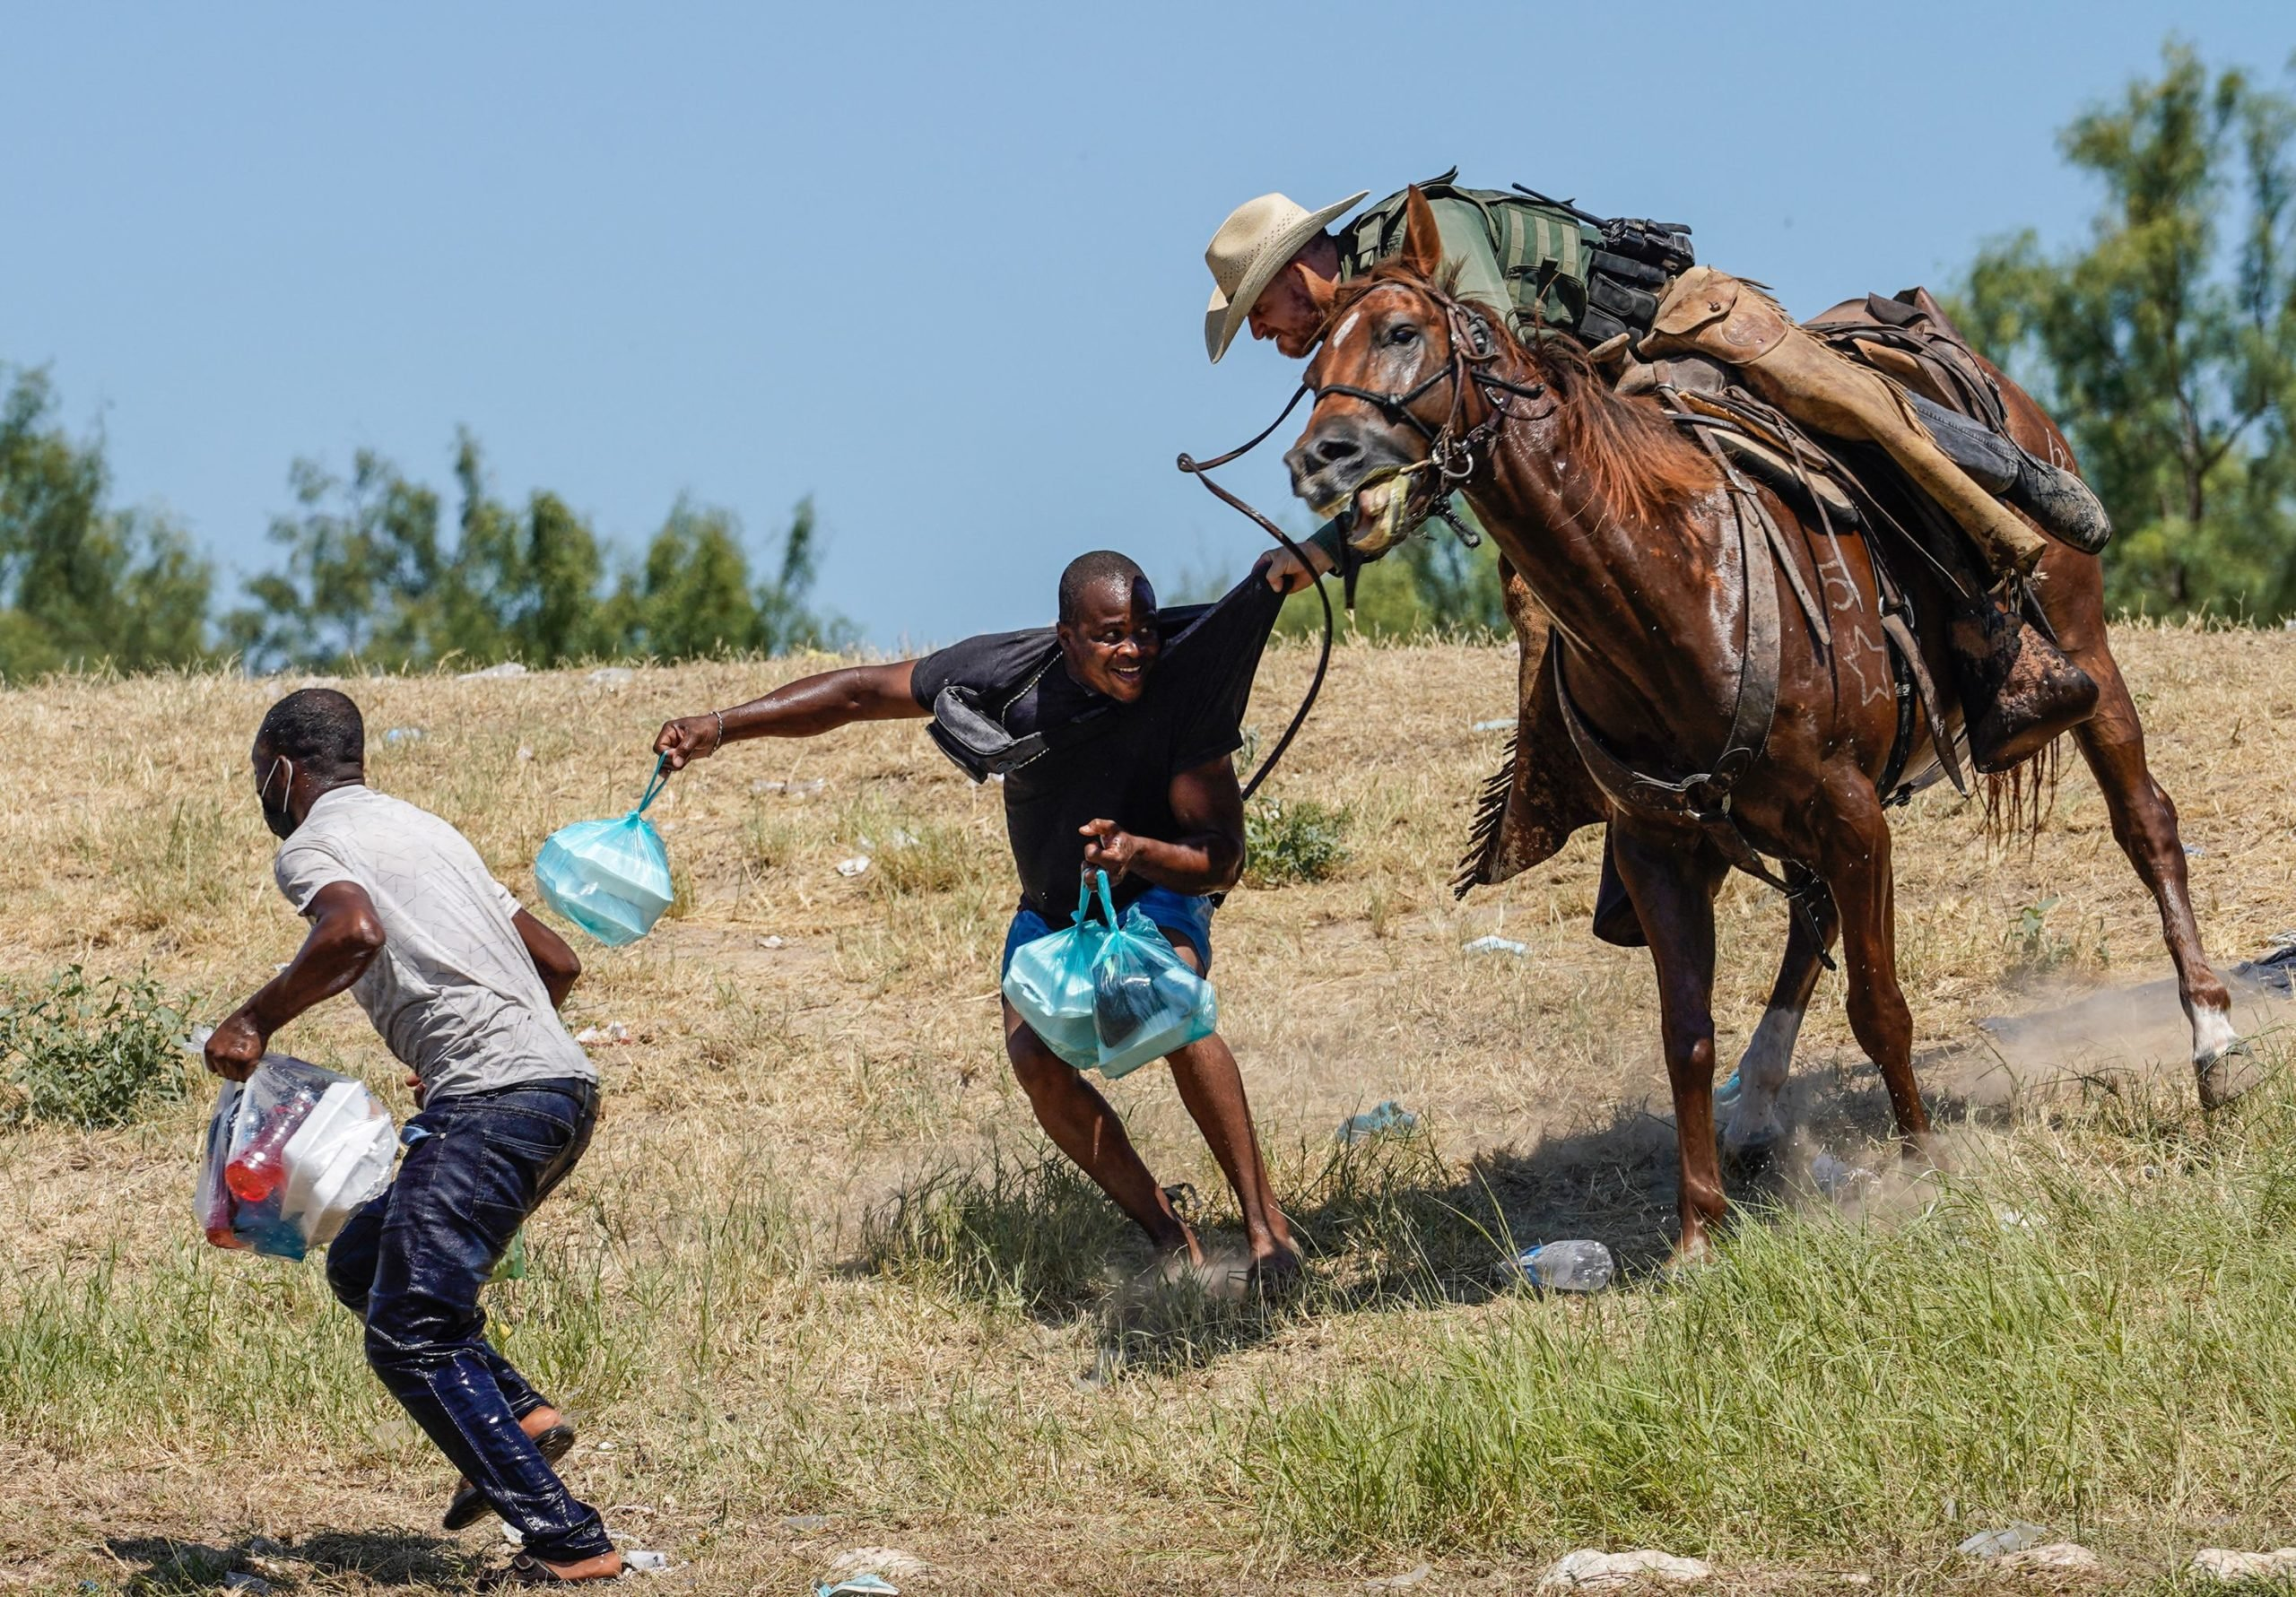 A United States Border Patrol agent on horseback tries to stop a Haitian migrant from entering an encampment on the banks of the Rio Grande near the Acuna Del Rio International Bridge in Del Rio, Texas on September 19, 2021. (Photo by PAUL RATJE/AFP via Getty Images)